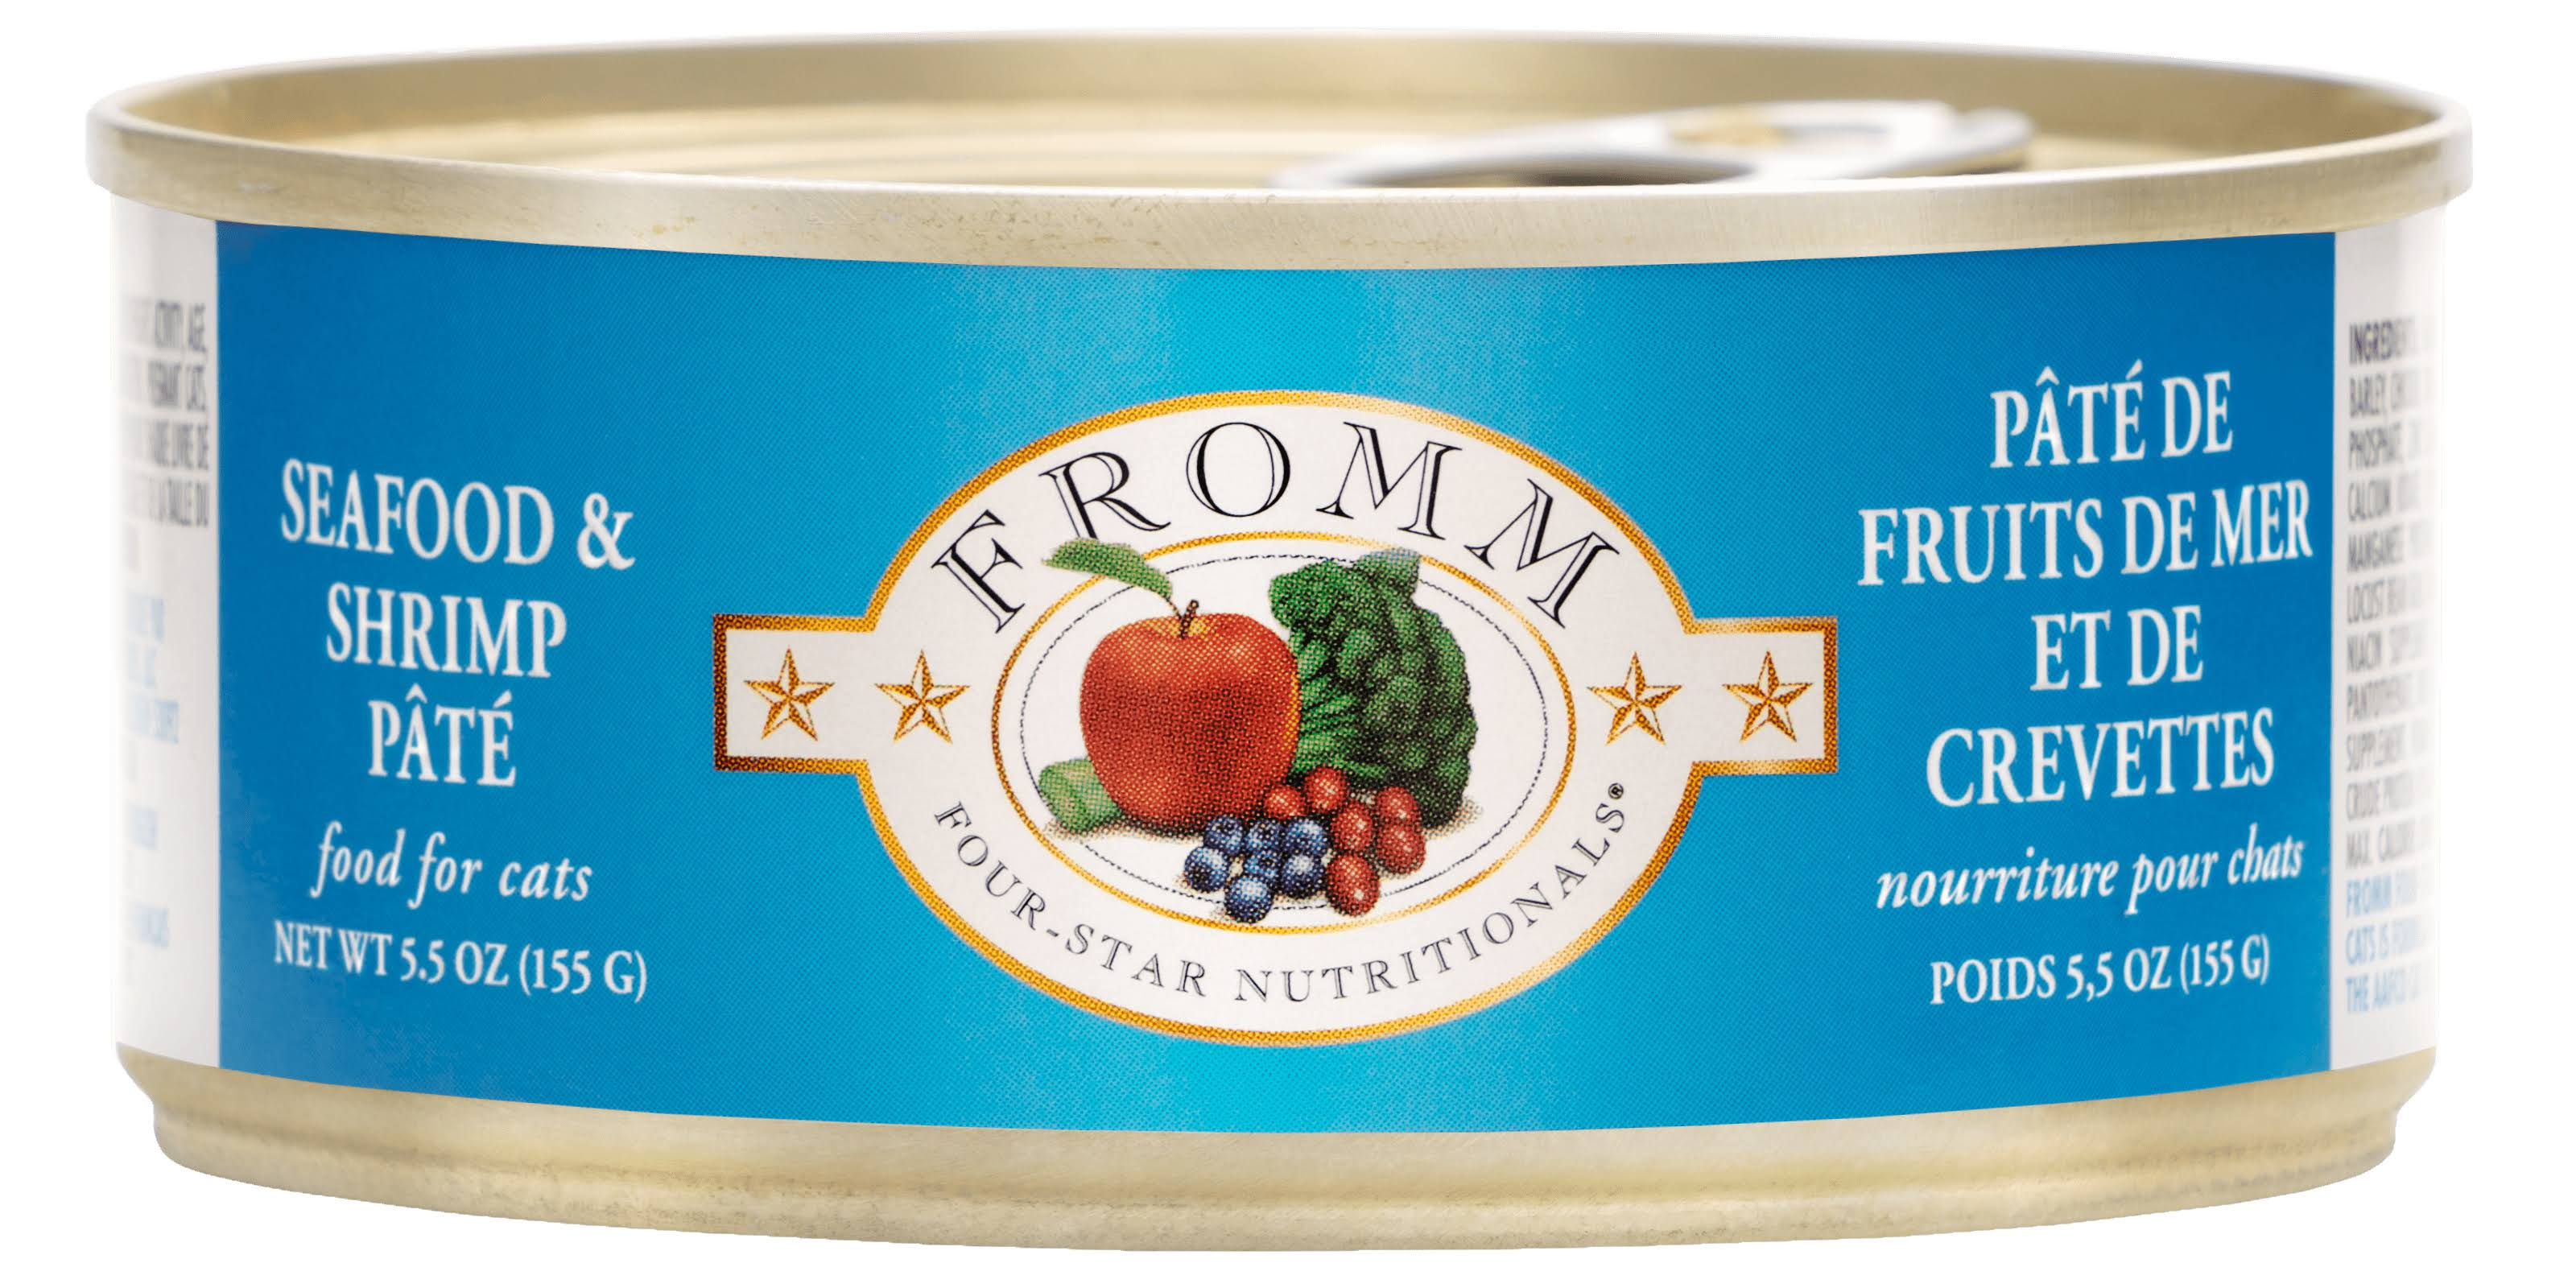 Fromm Four Star Seafood and Shrimp Pate Canned Cat Food, 5.5 oz.